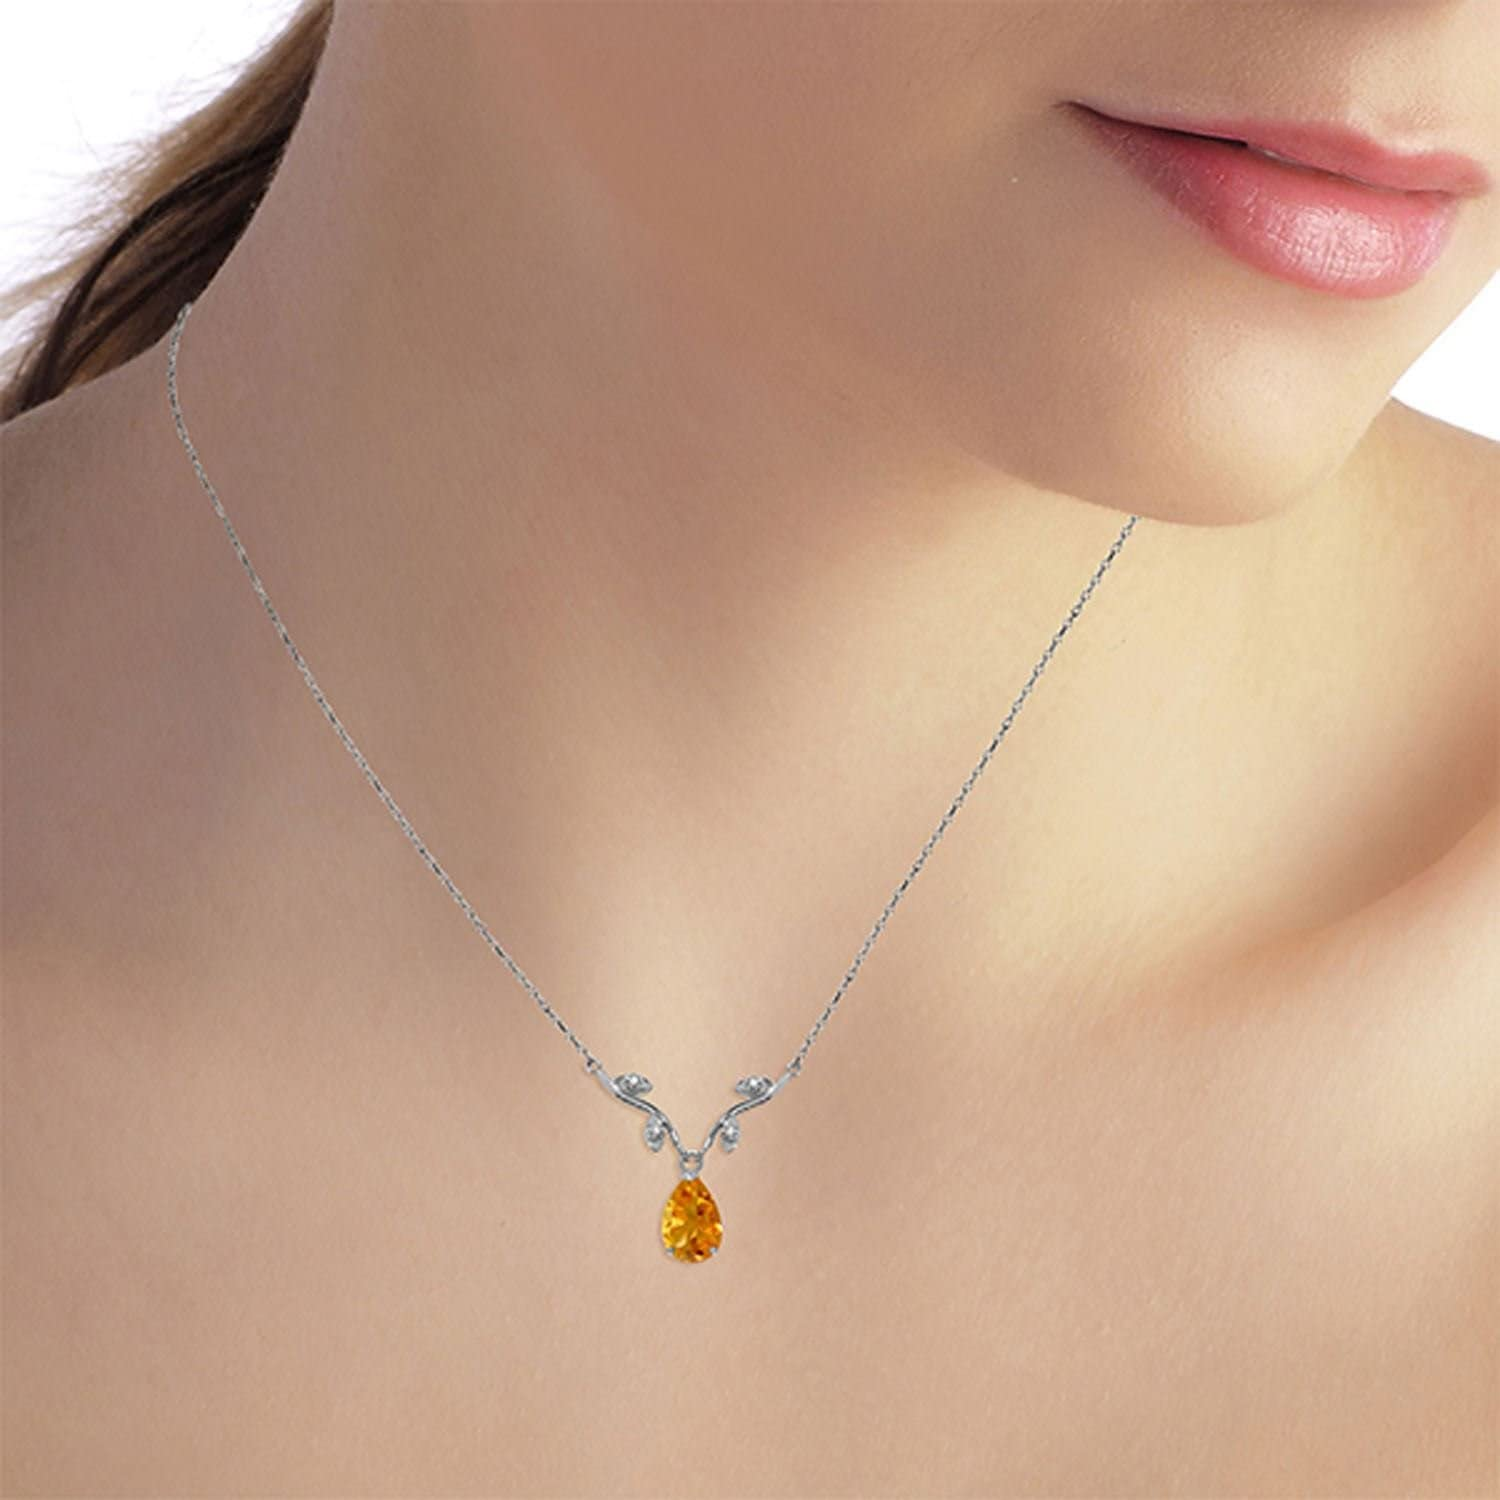 ALARRI 1.52 CTW 14K Solid White Gold Soul Of Wit Citrine Diamond Necklace with 22 Inch Chain Length